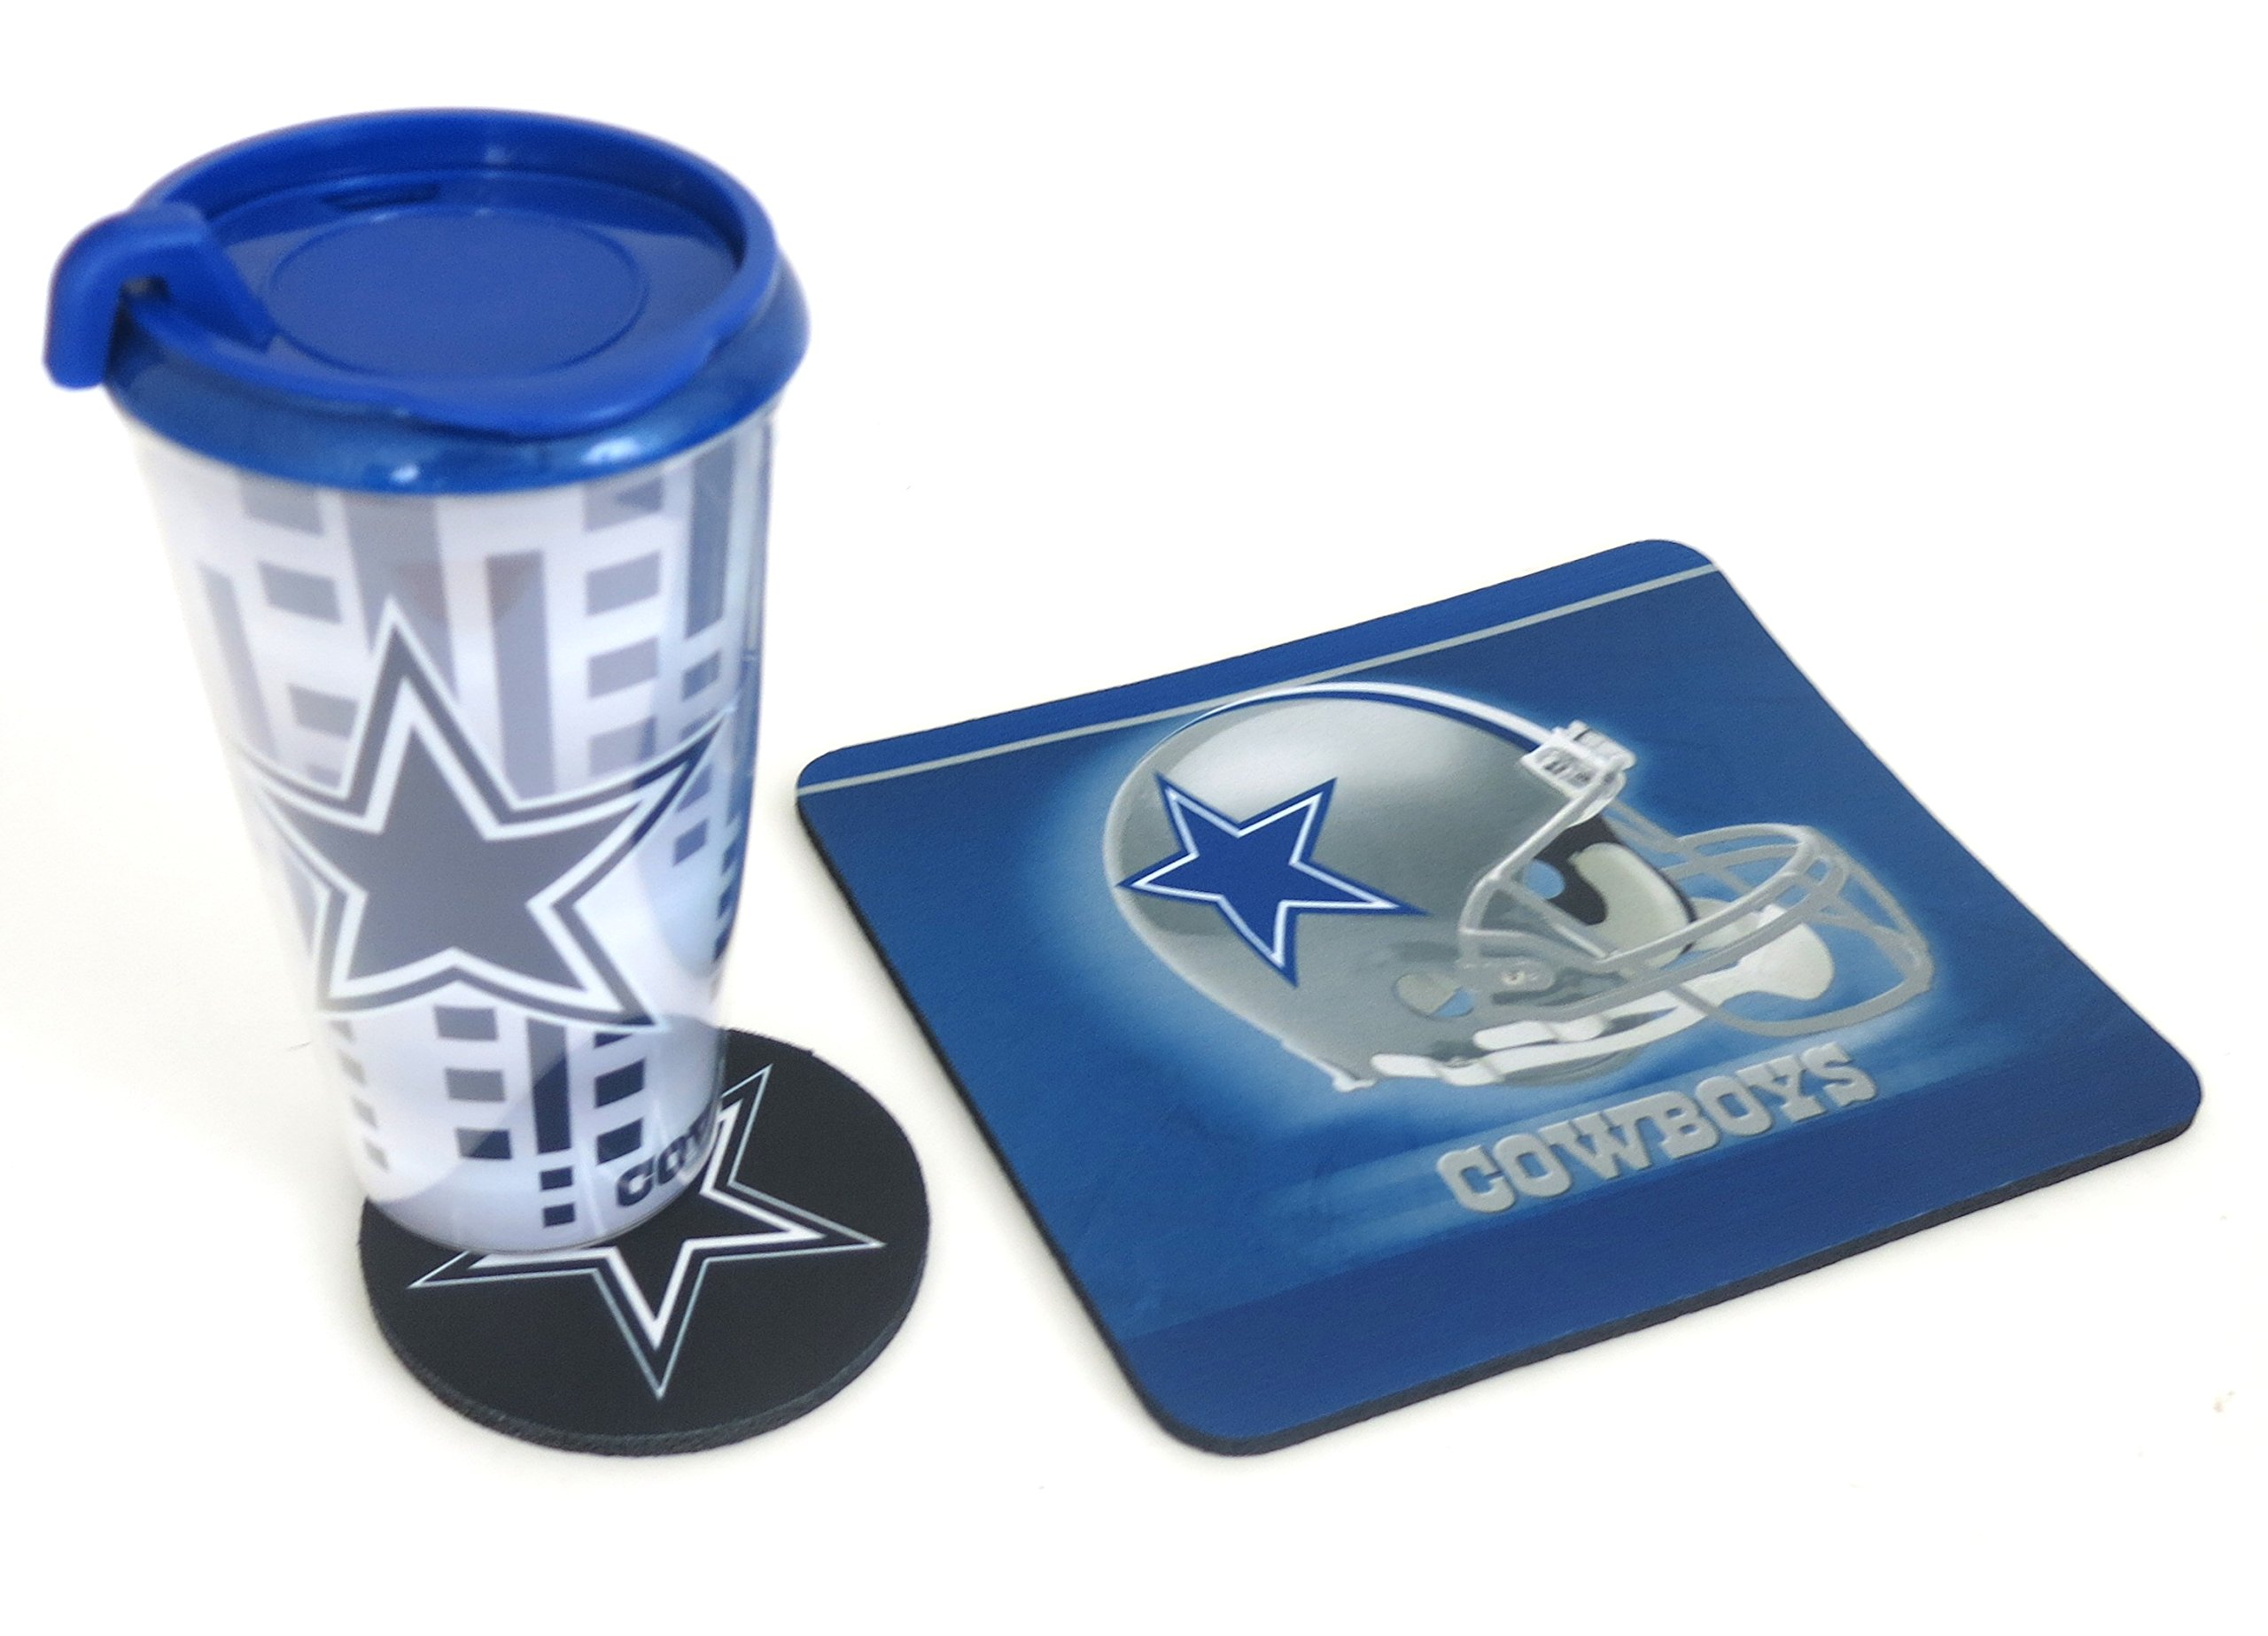 Dallas Cowboys computer workstation set. 3 piece set includes a large double wall Tumbler, Mouse pad and Coaster, tumbler